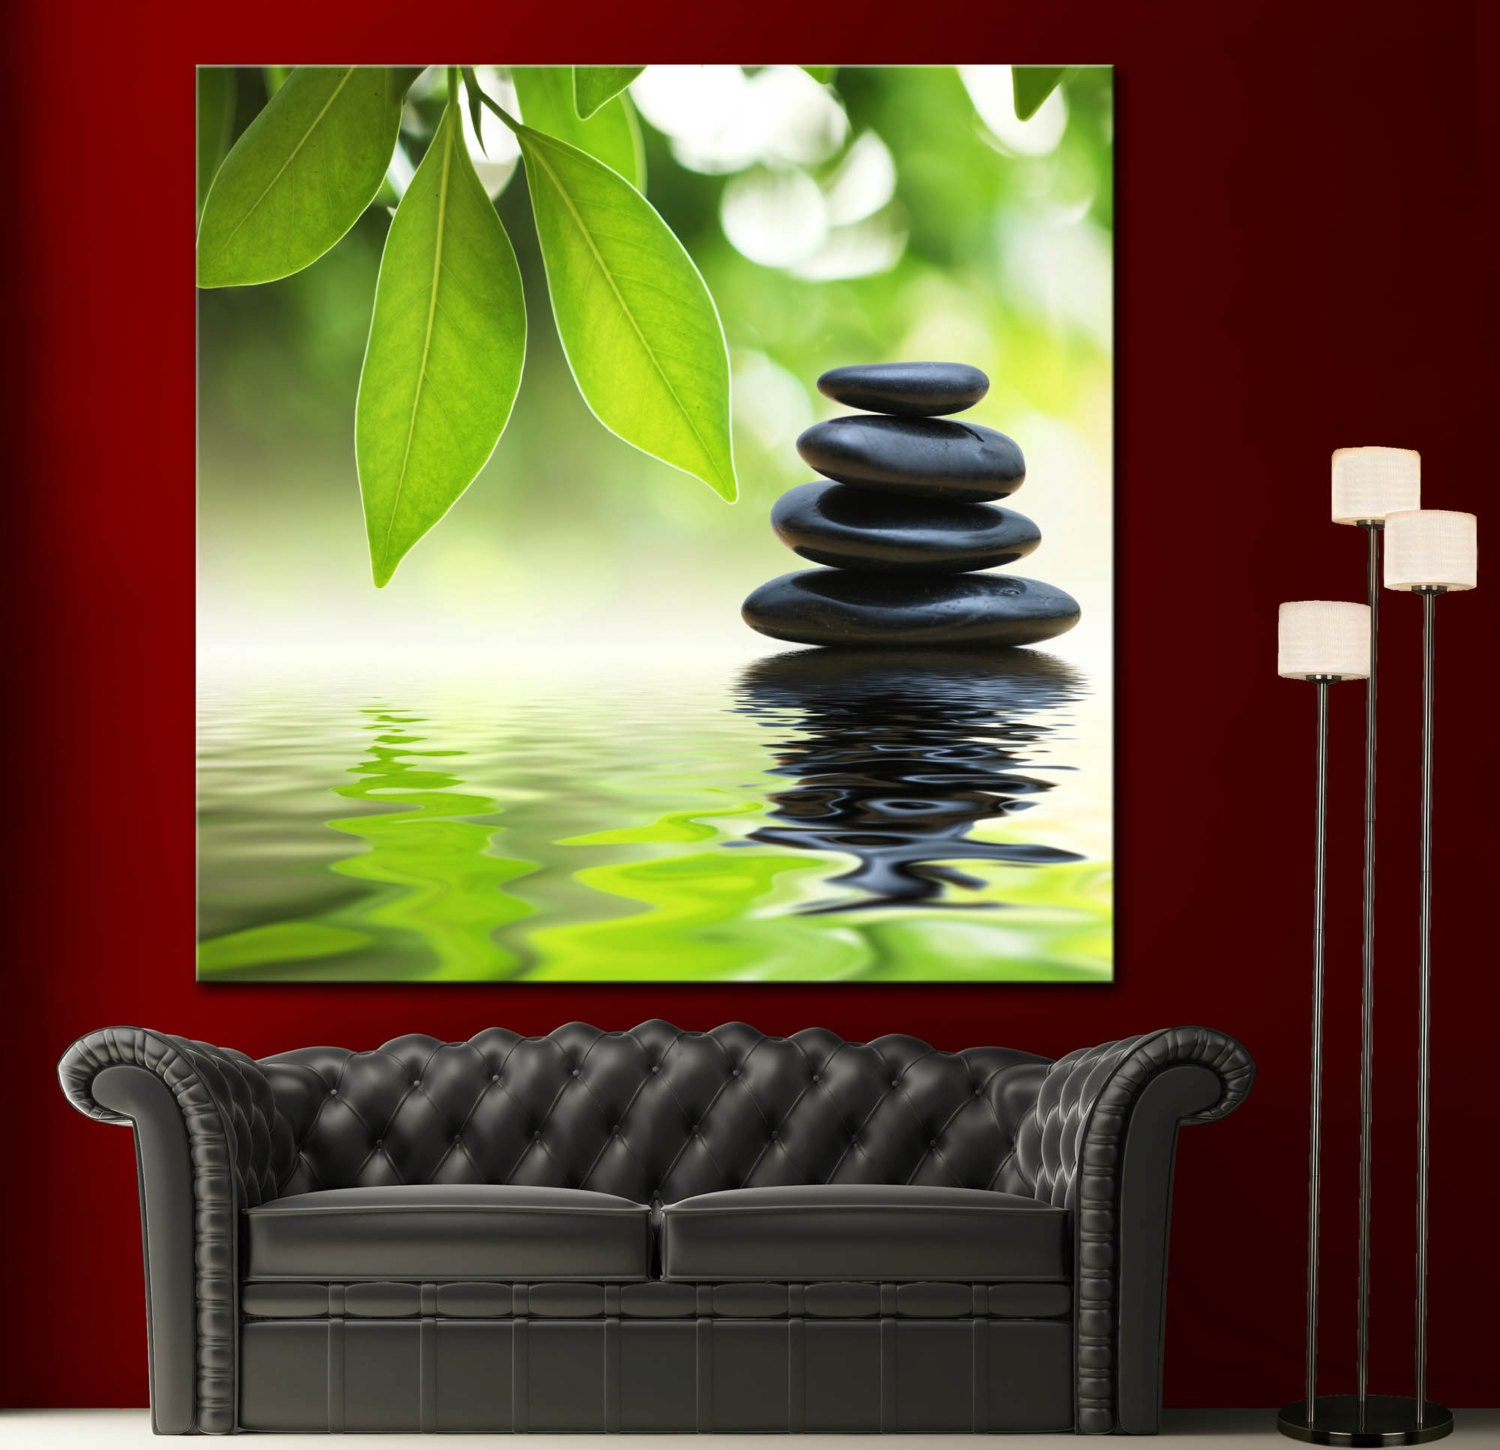 Relax Stone: Zen Bamboo Spa Stone Watter Relax Colorful Picture Wall Art